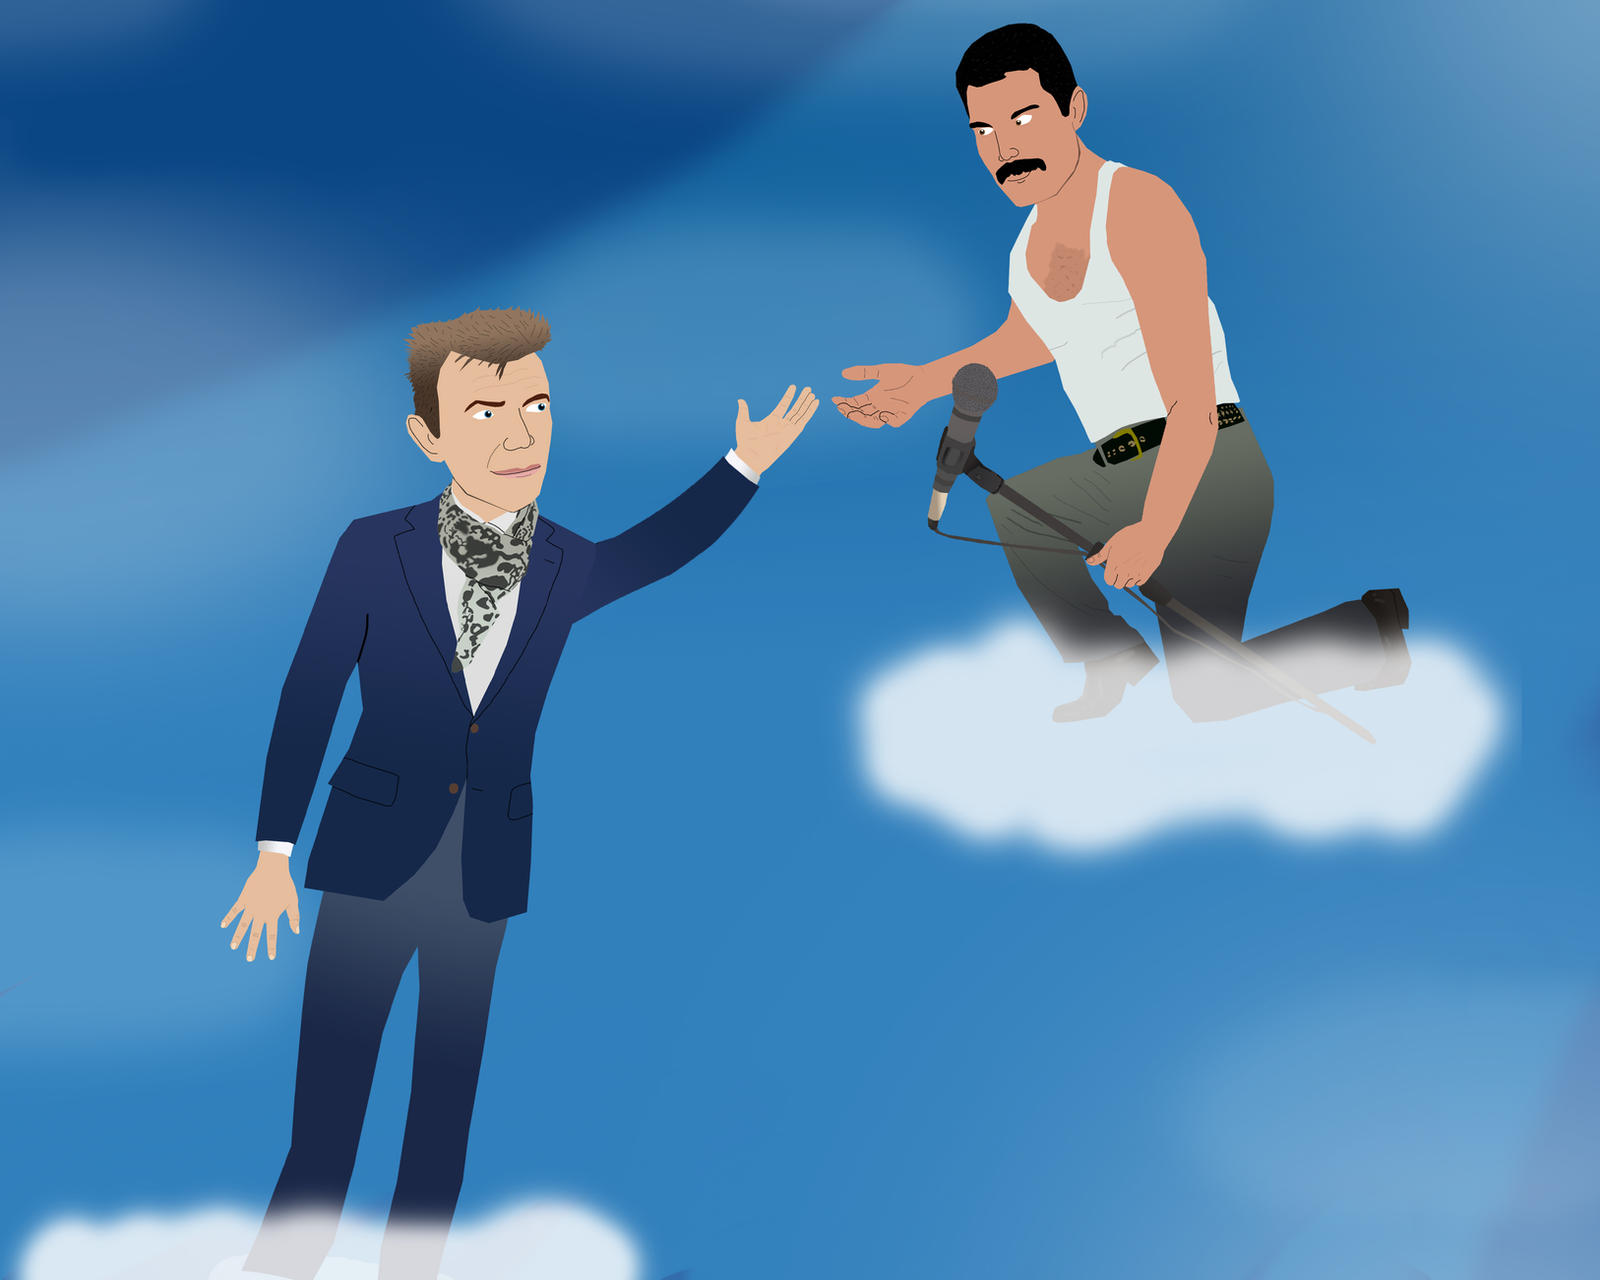 Freddie Mercury welcomes David Bowie by AndrewSS23 on ... Labyrinth 1986 Wallpaper